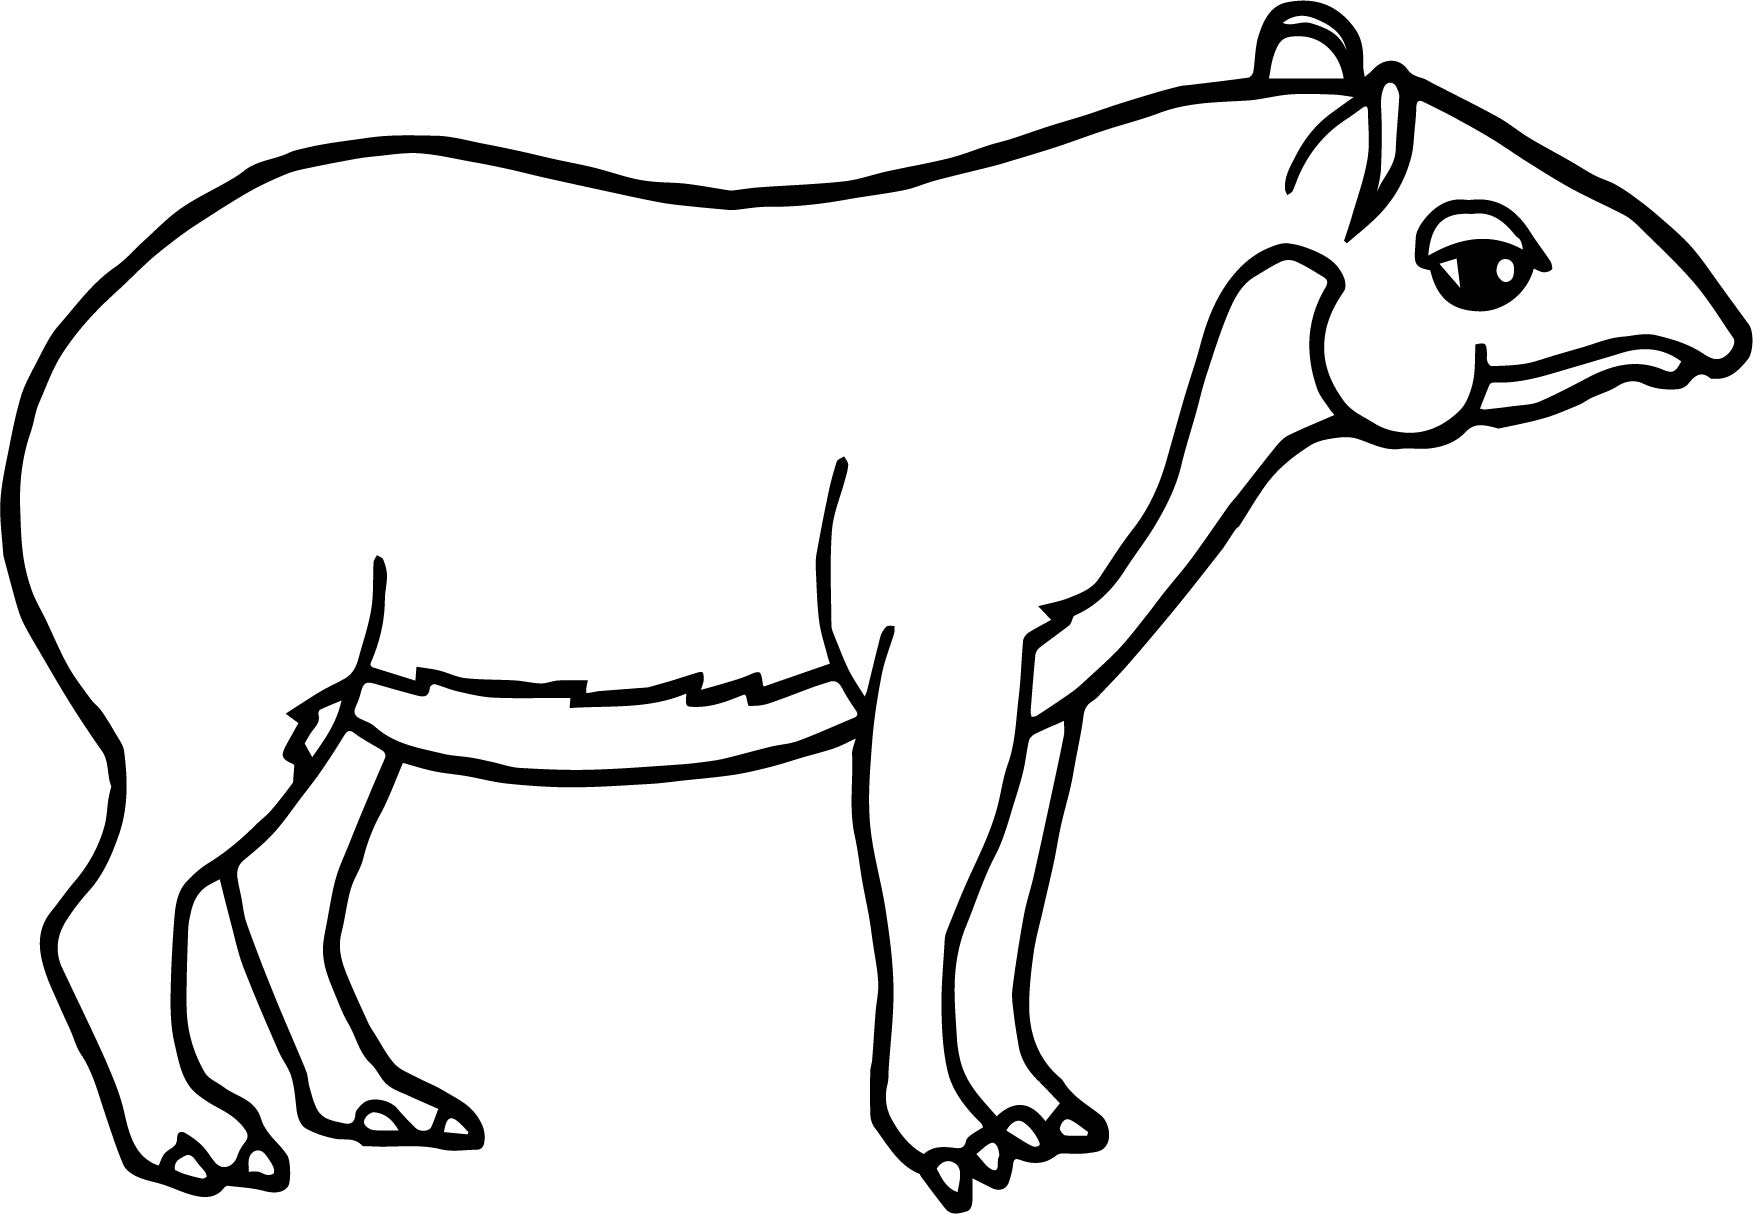 Rainforest Tapir Coloring Page